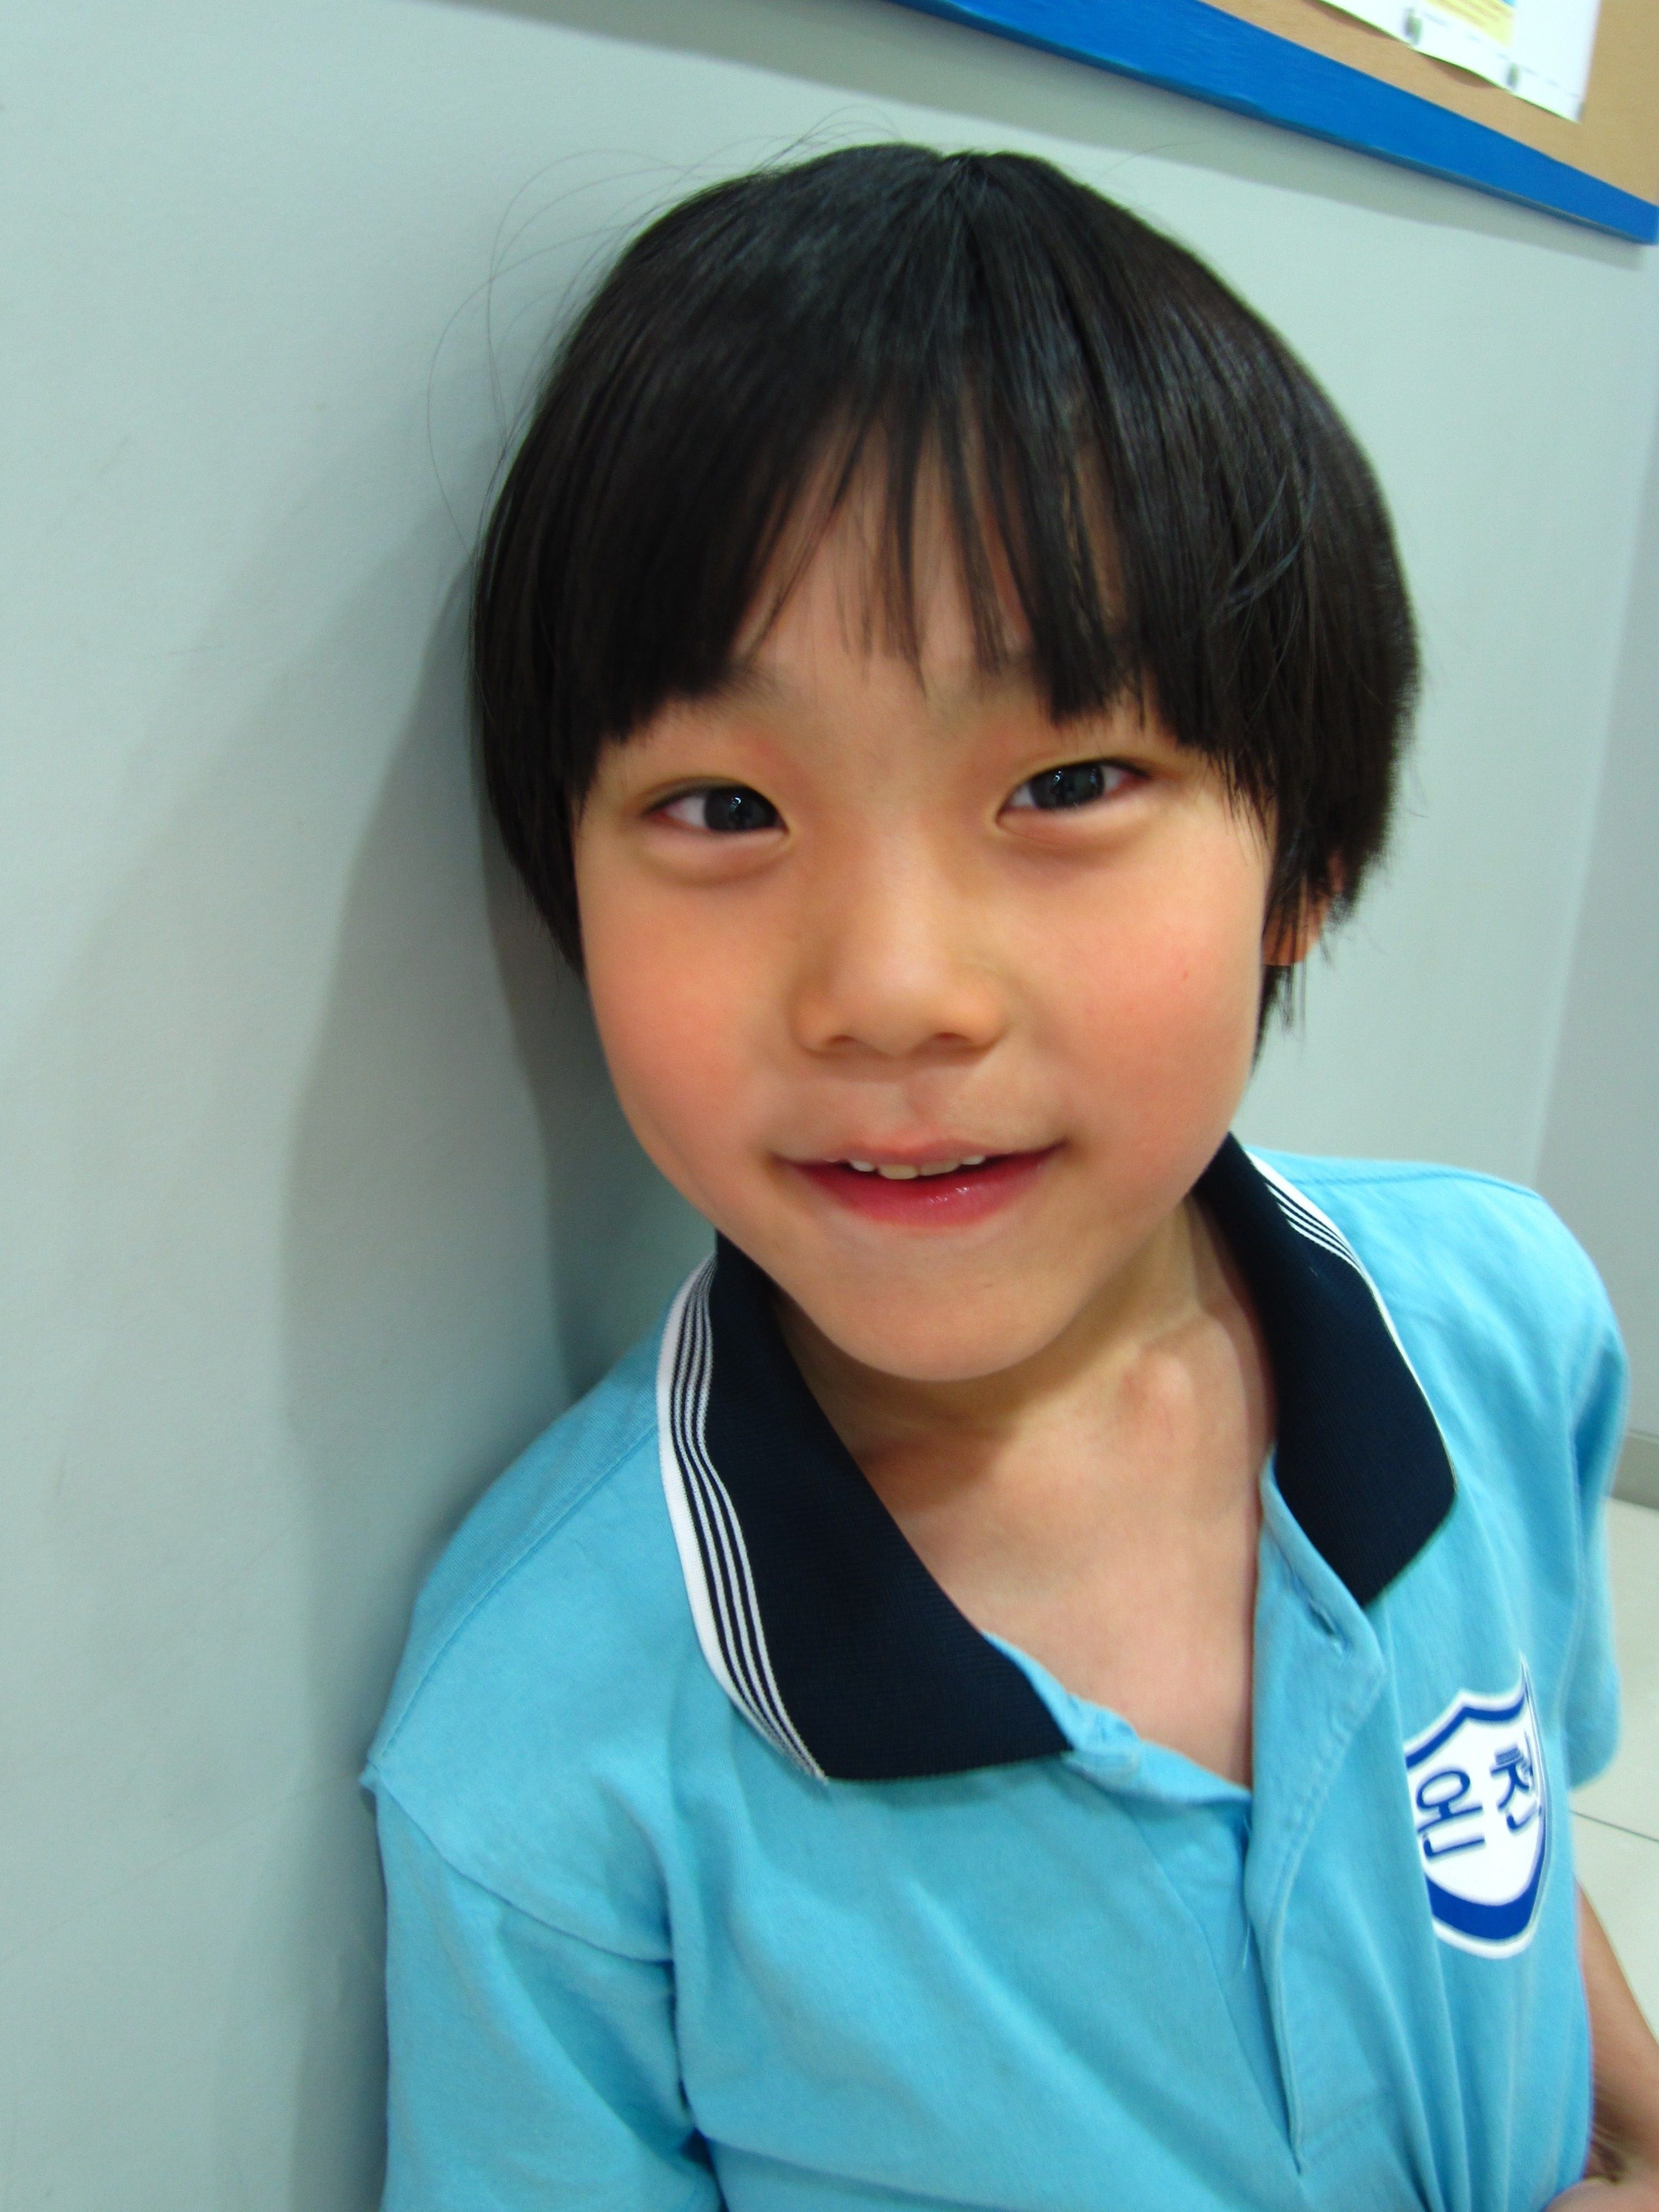 Pin by Michelle on Mongoloid Children, Front View | Asian